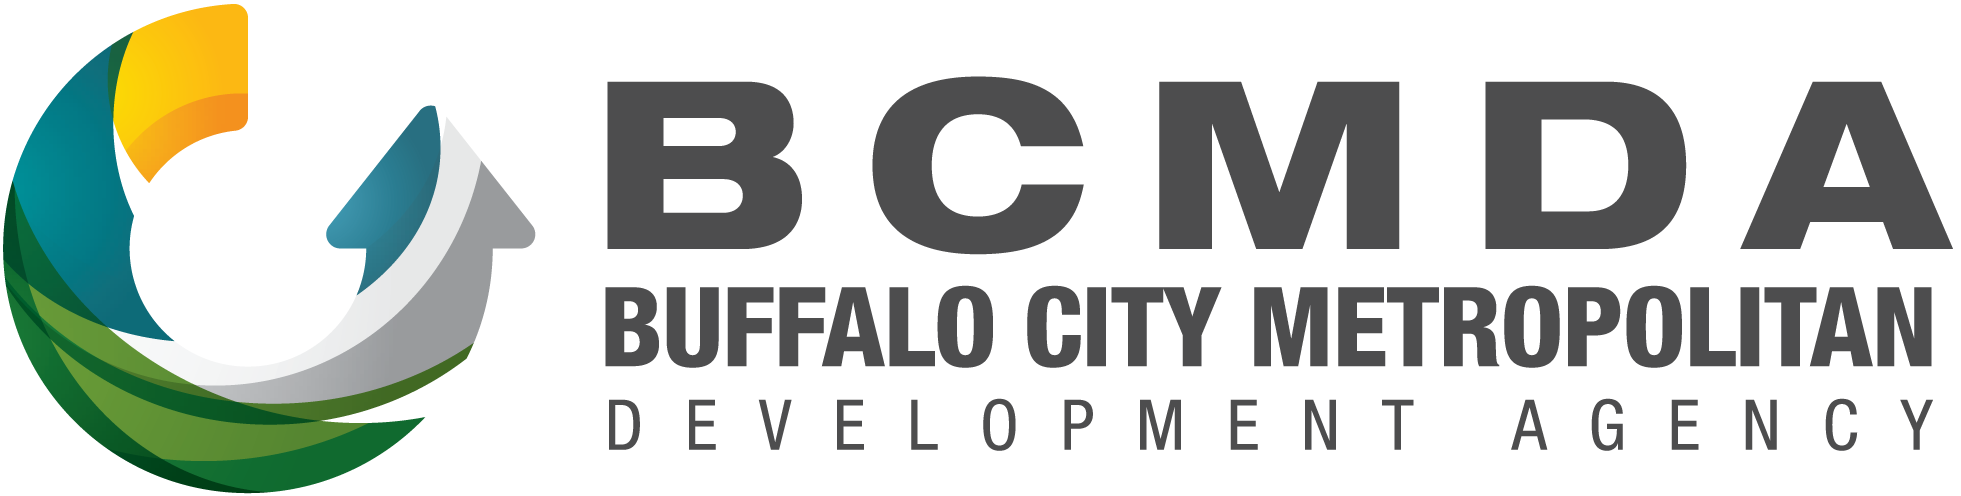 Buffalo City Metropolitan Development Agency